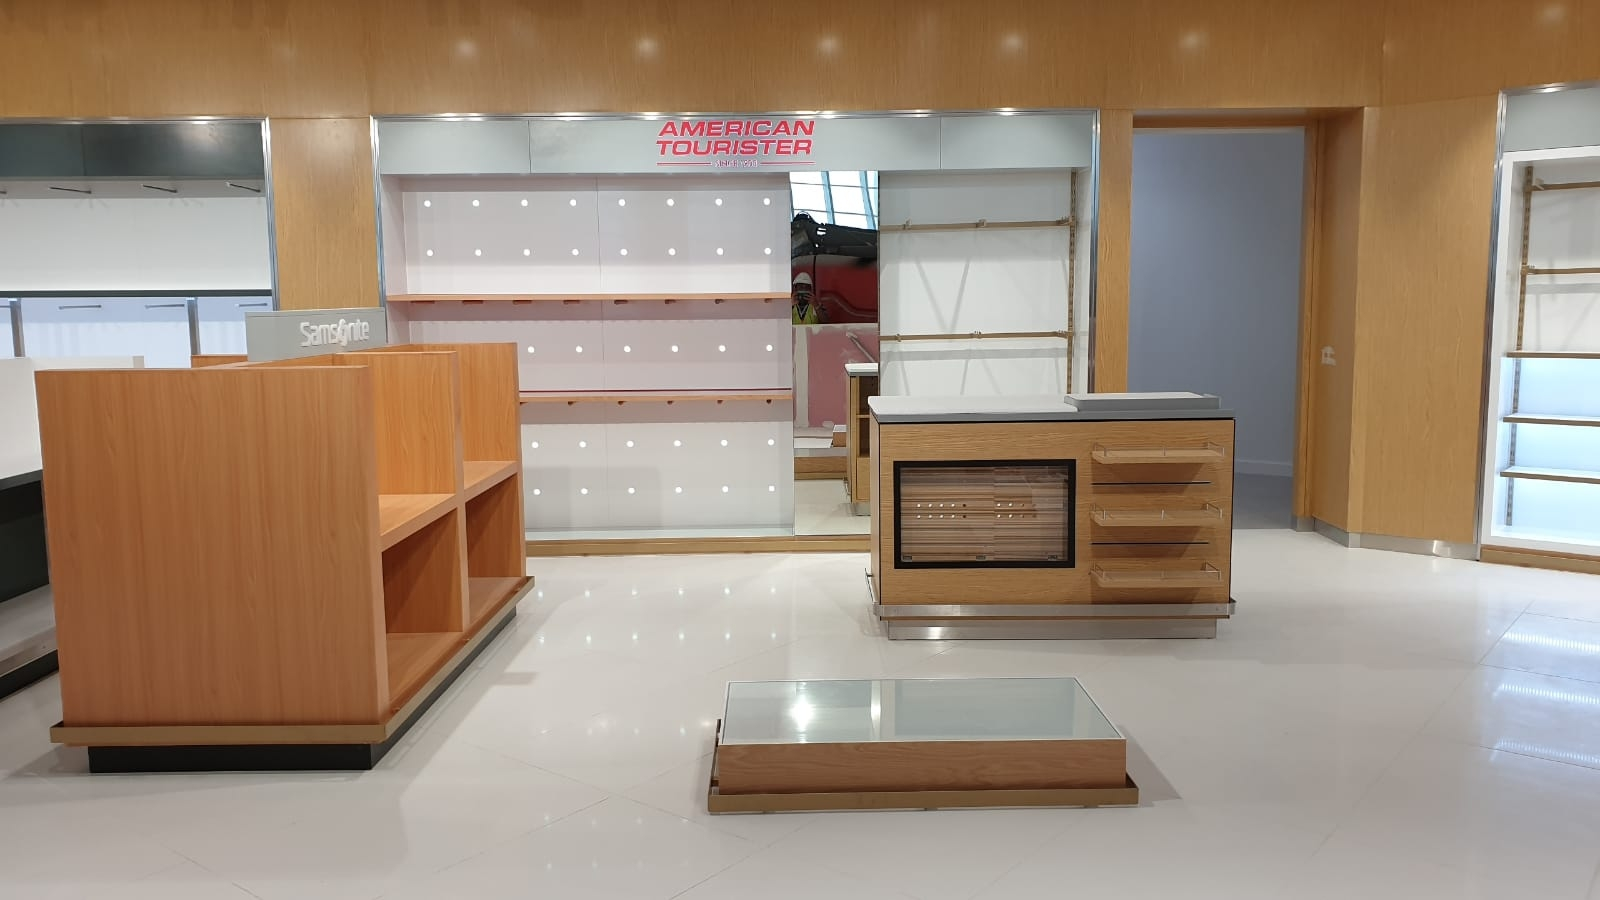 American Tourister - Joinery & Installation